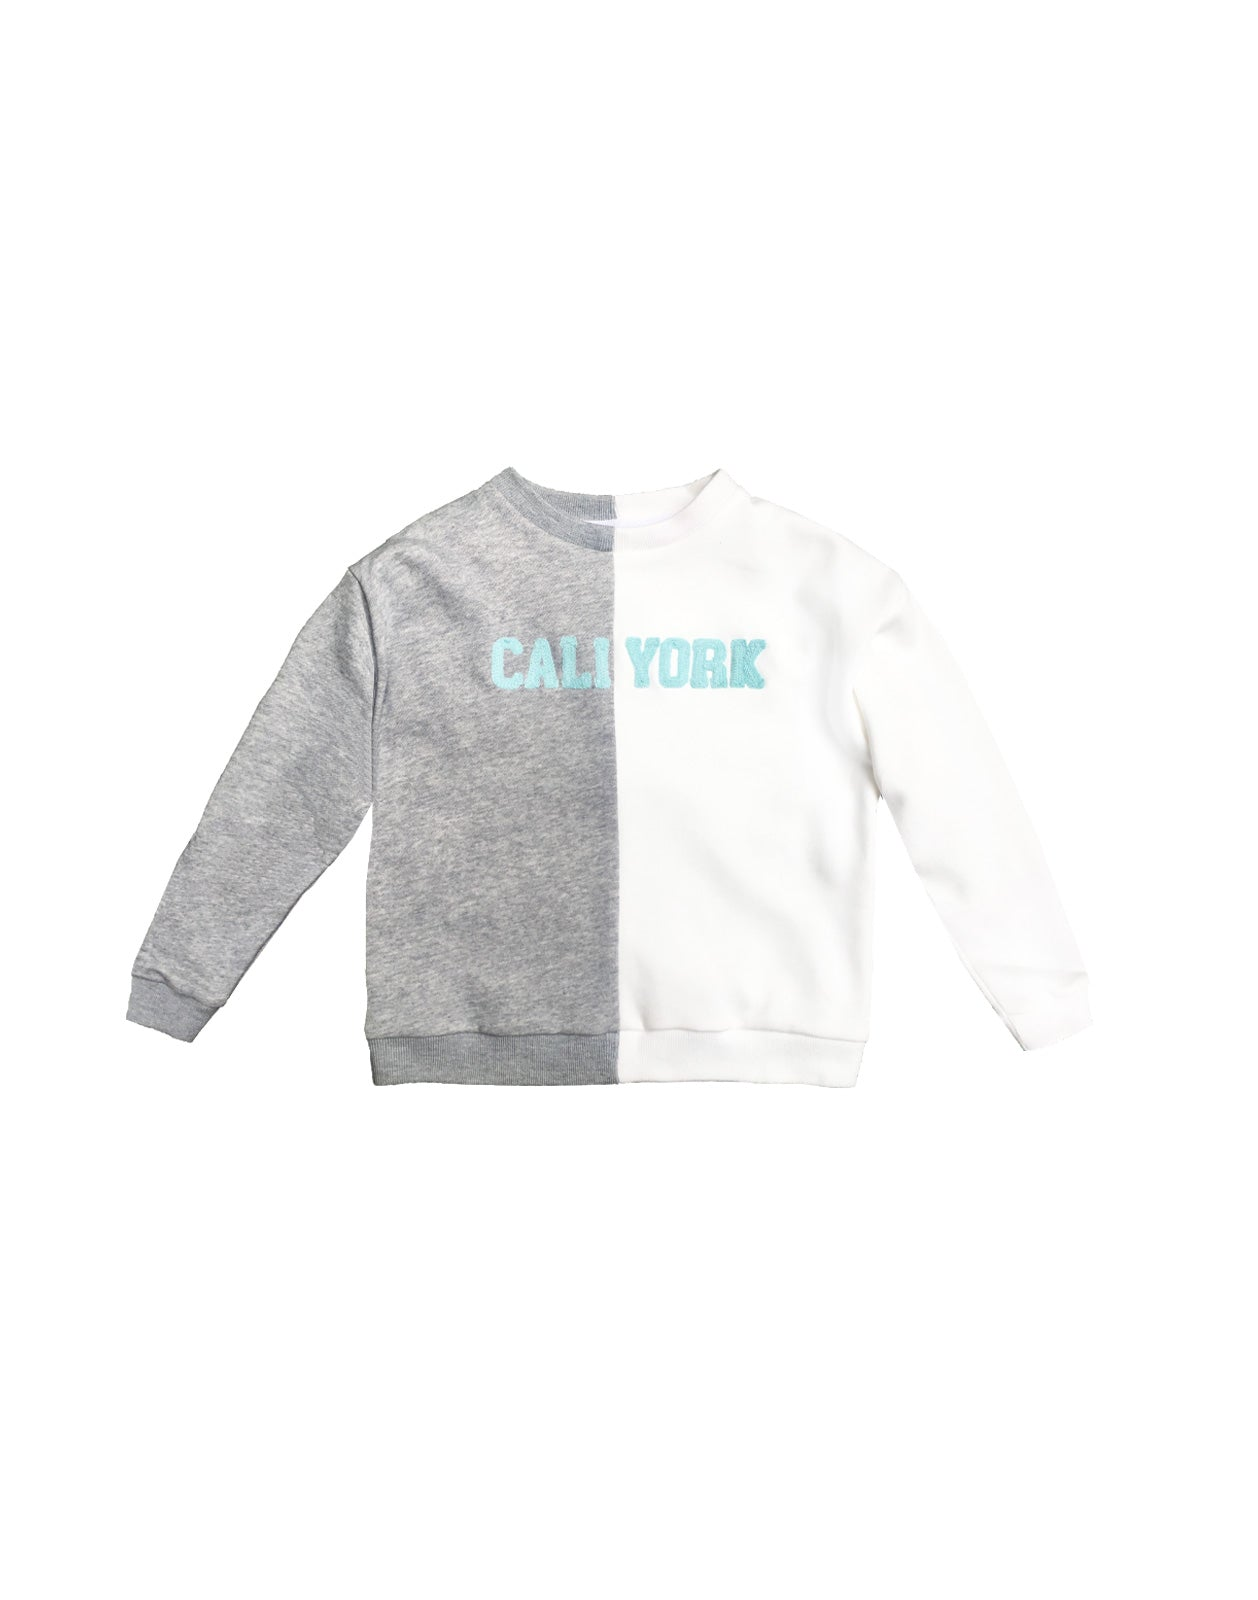 CaliYork Kid's sweatshirt in half white, half grey.